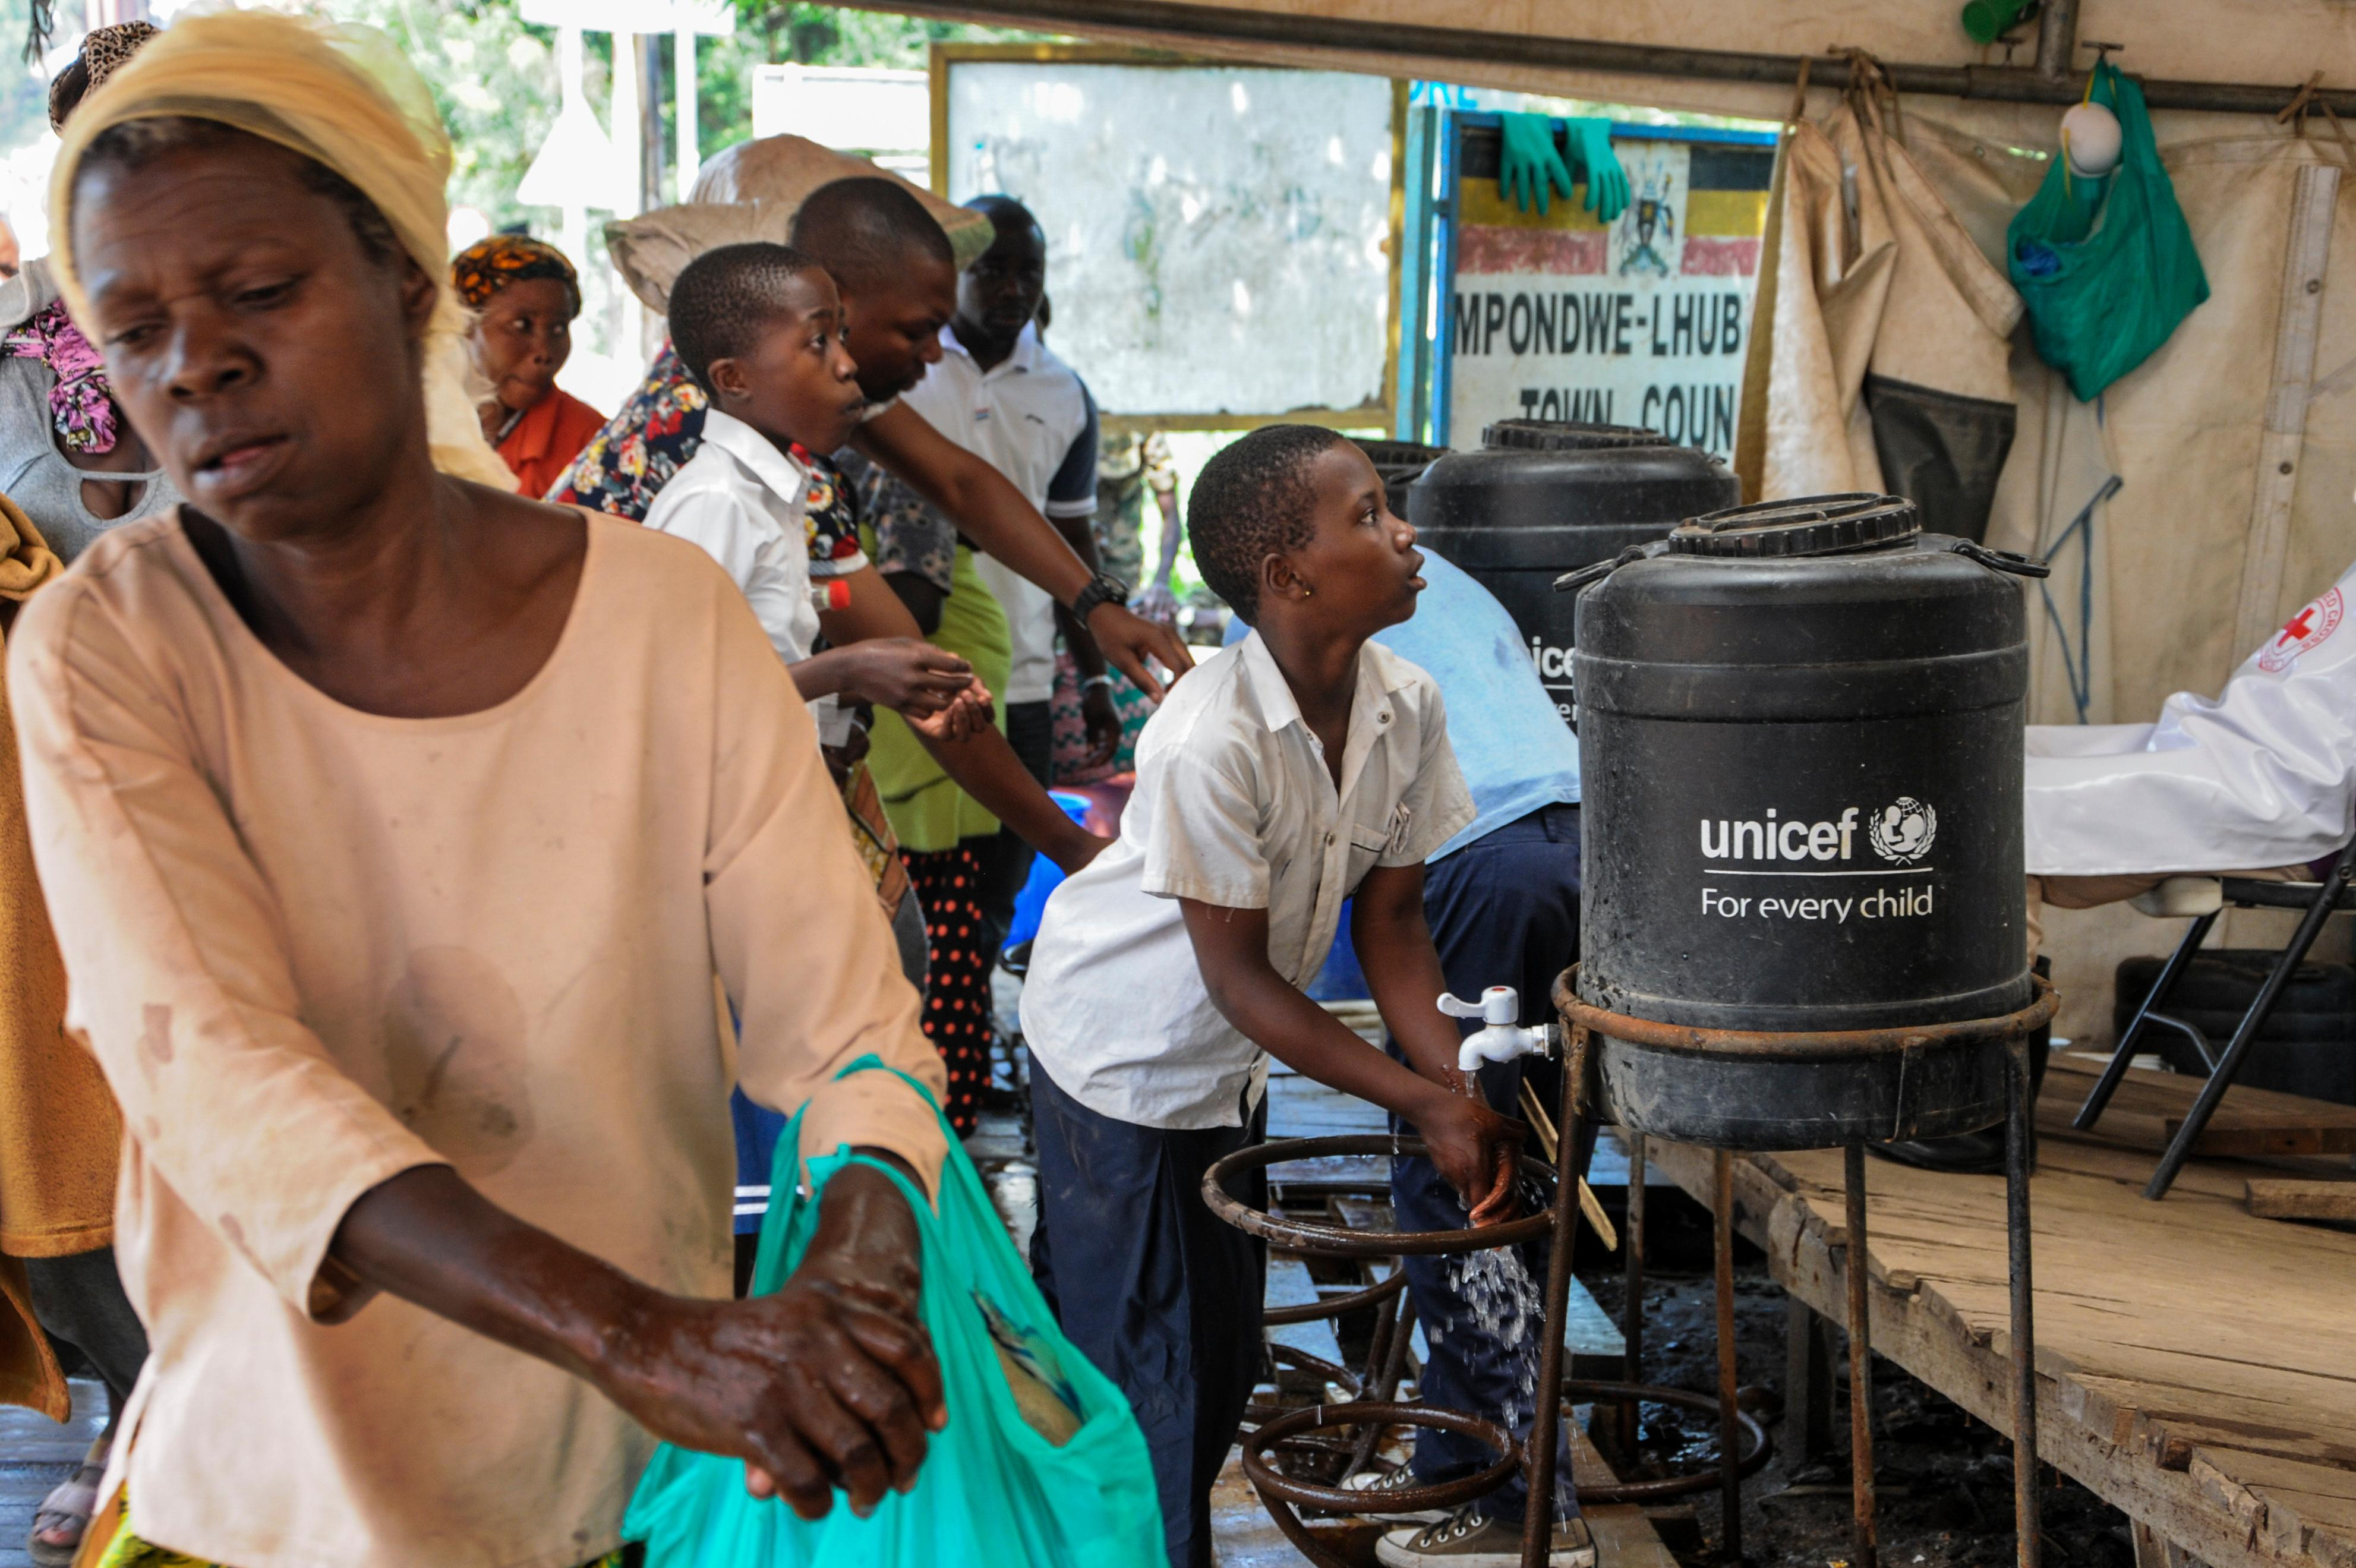 People coming from Congo wash their hands with chlorinated water to prevent the spread of infection, at the Mpondwe border crossing with Congo, in western Uganda Friday, June 14, 2019. (AP Photo/Ronald Kabuubi)